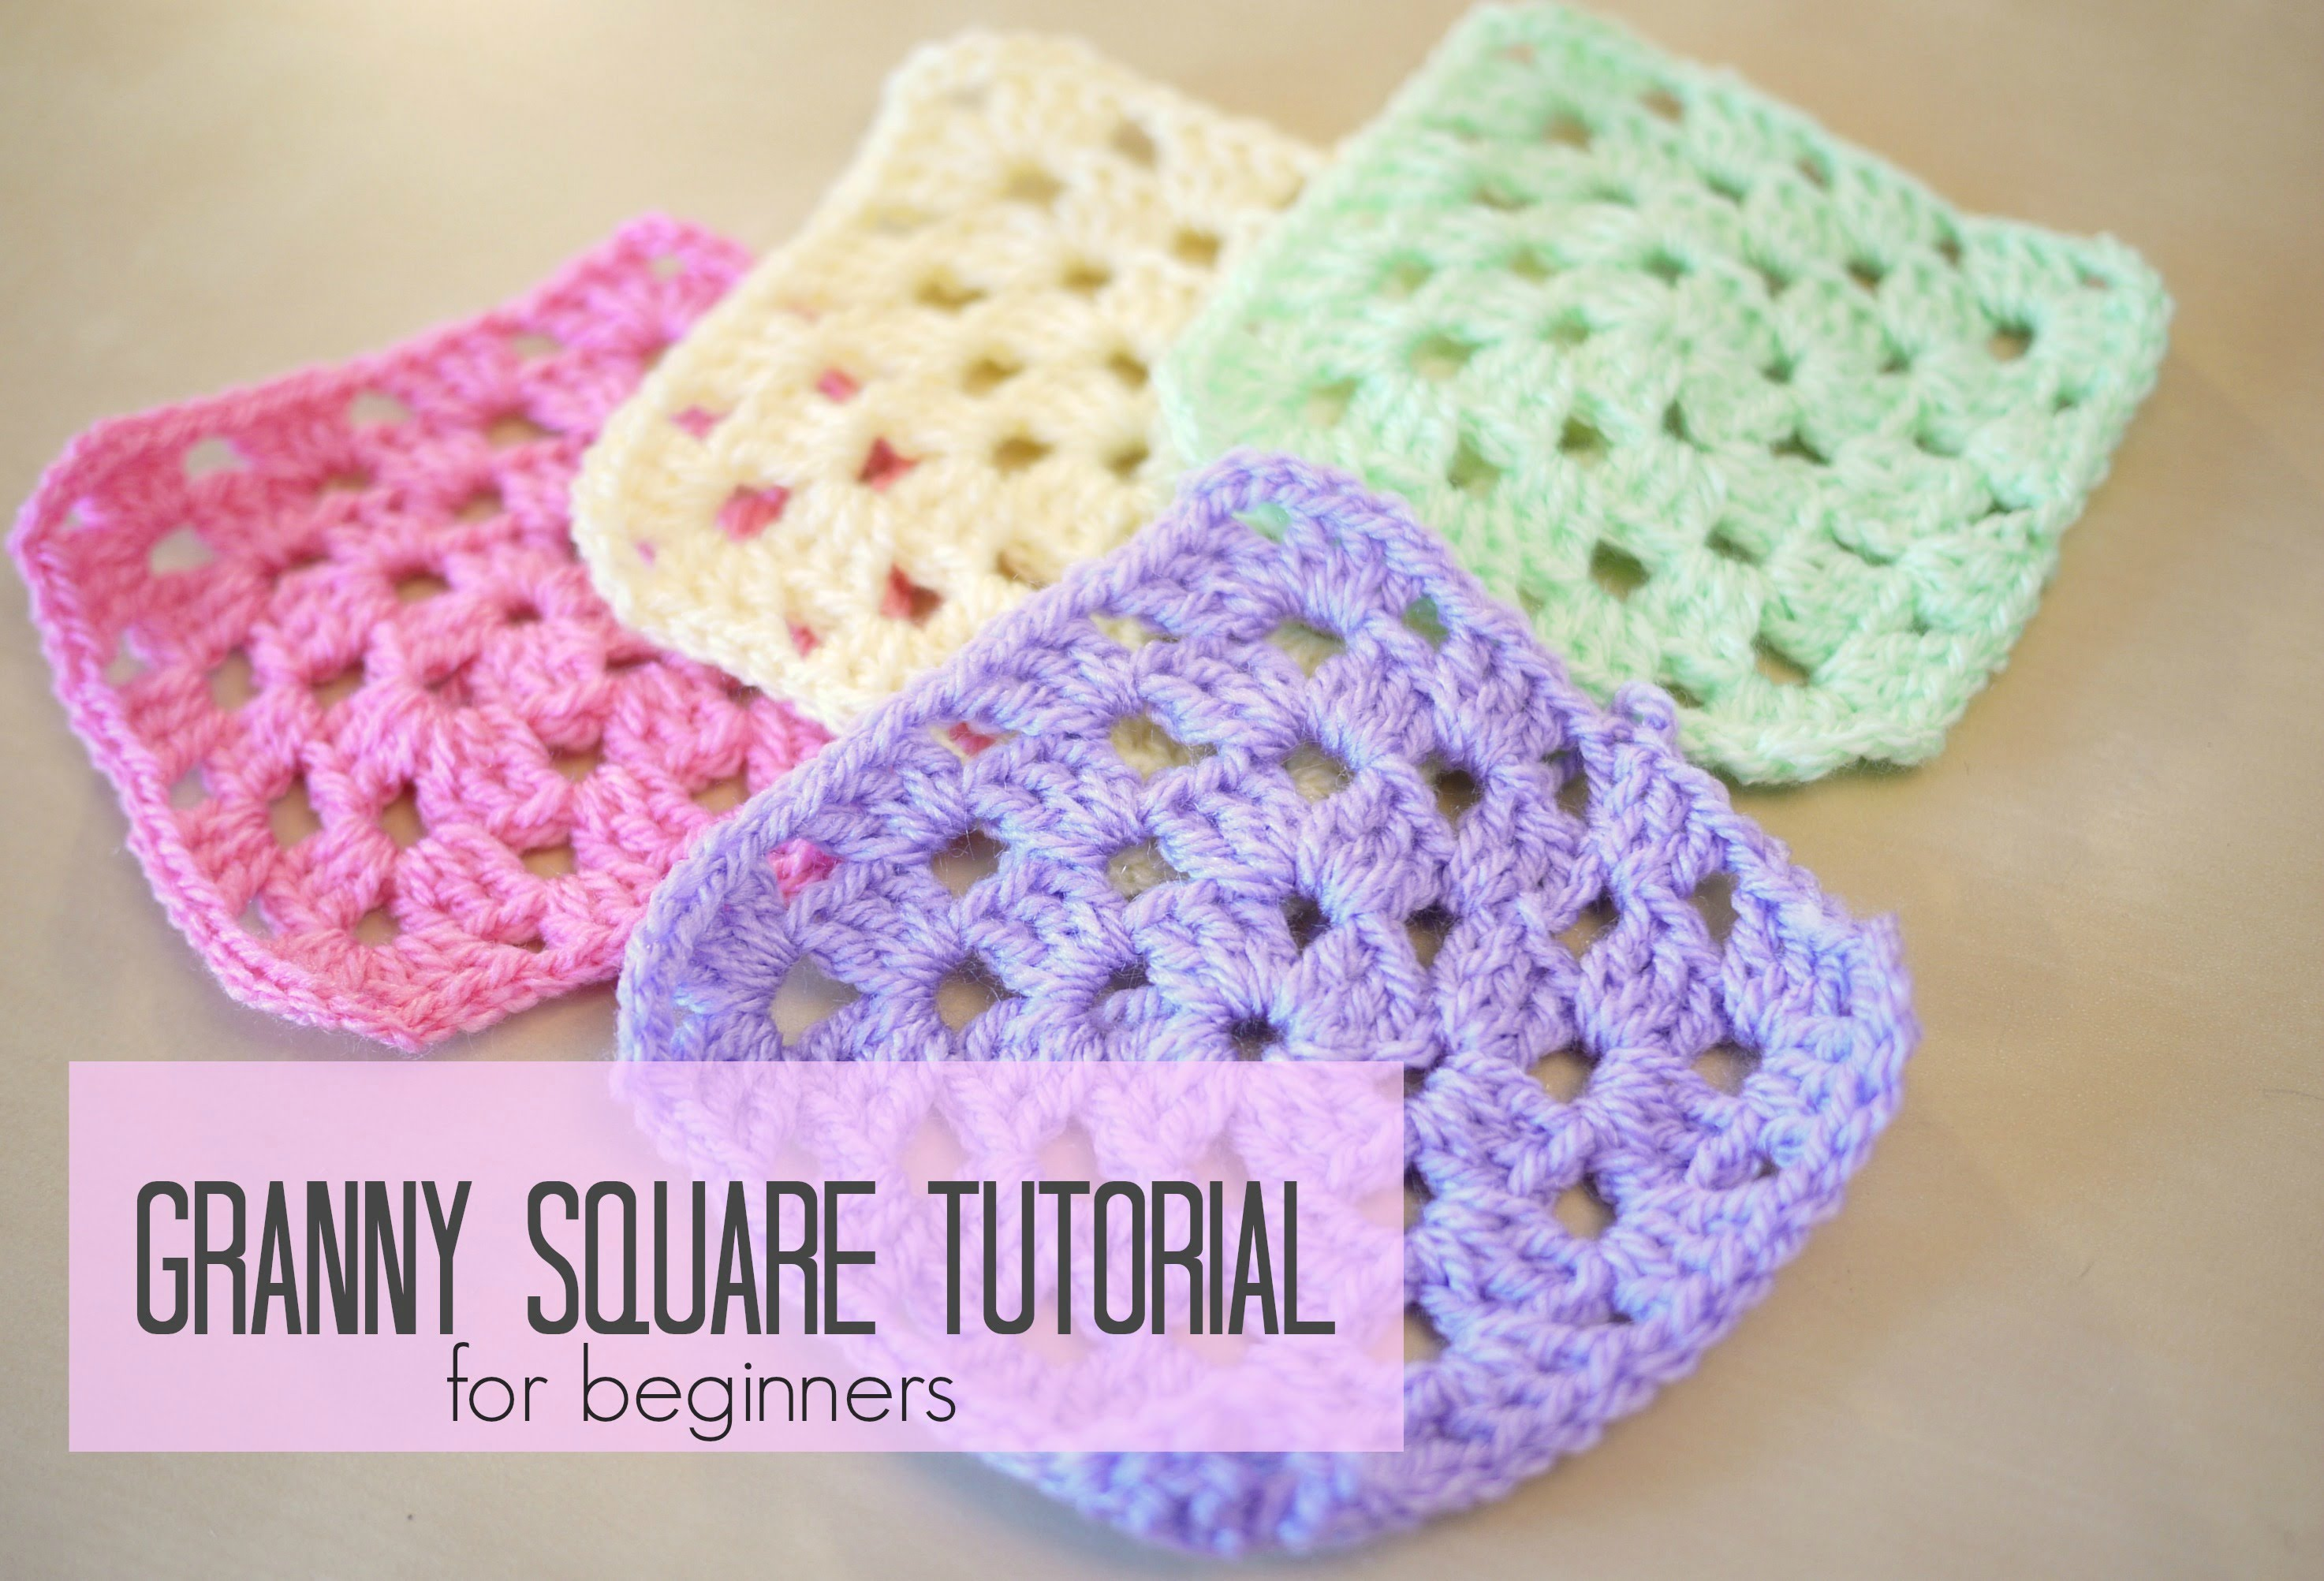 Crocheting For Beginners crochet: how to crochet a granny square for beginners   bella coco - sovkimu